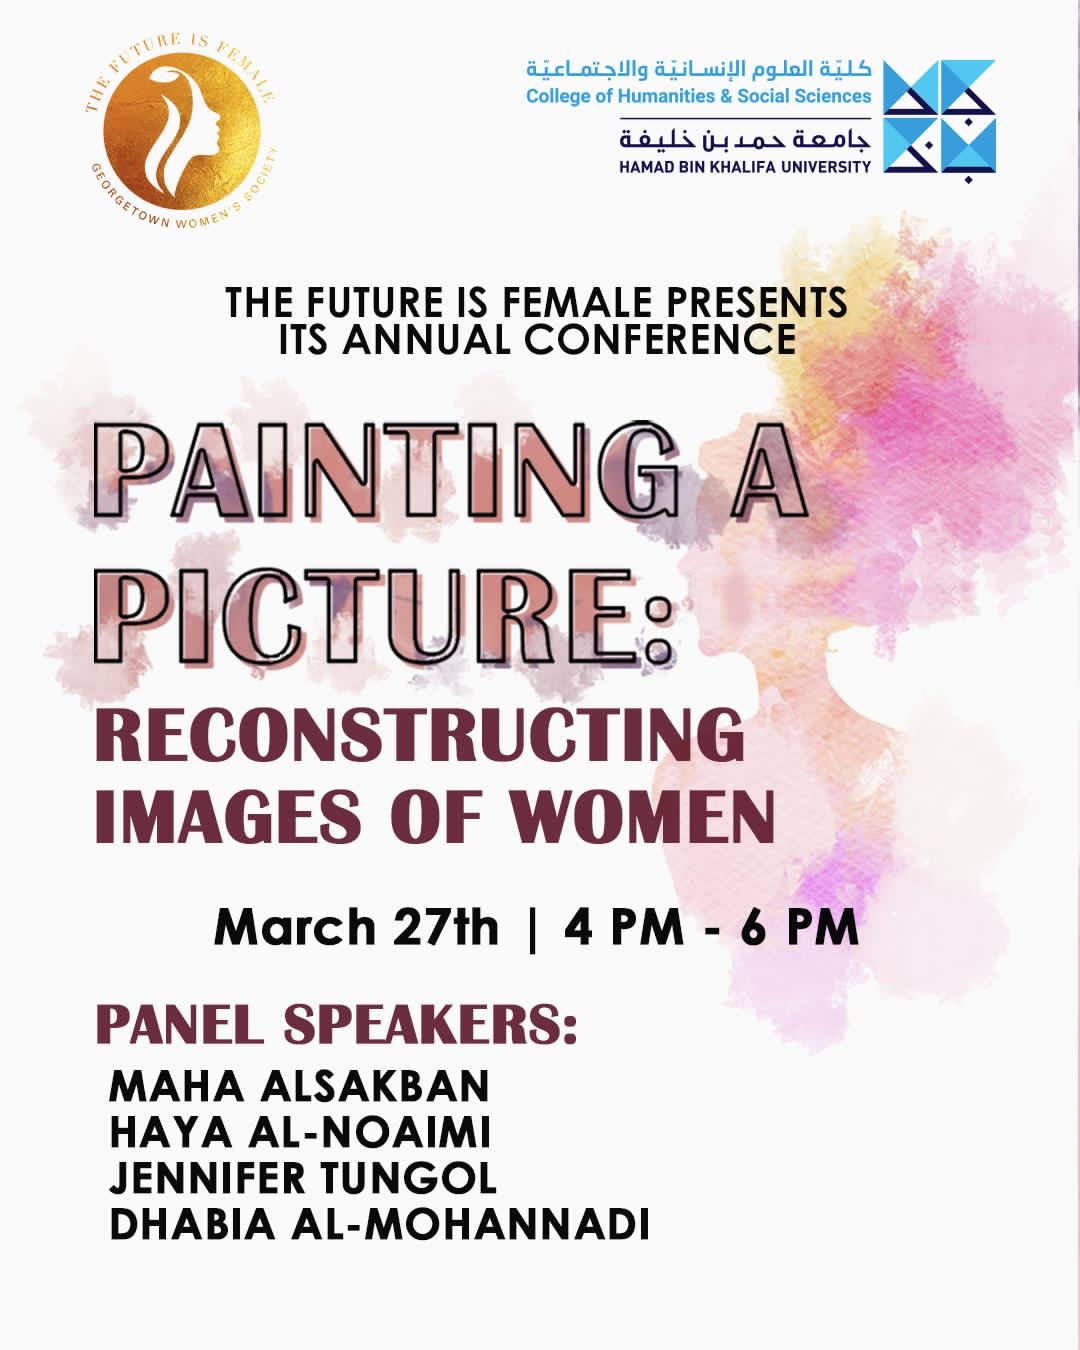 """Image has a logo of """"the future is female"""" on the top left, and HBKU logo on the top right, followed with event details, including name, time, date and speakers"""